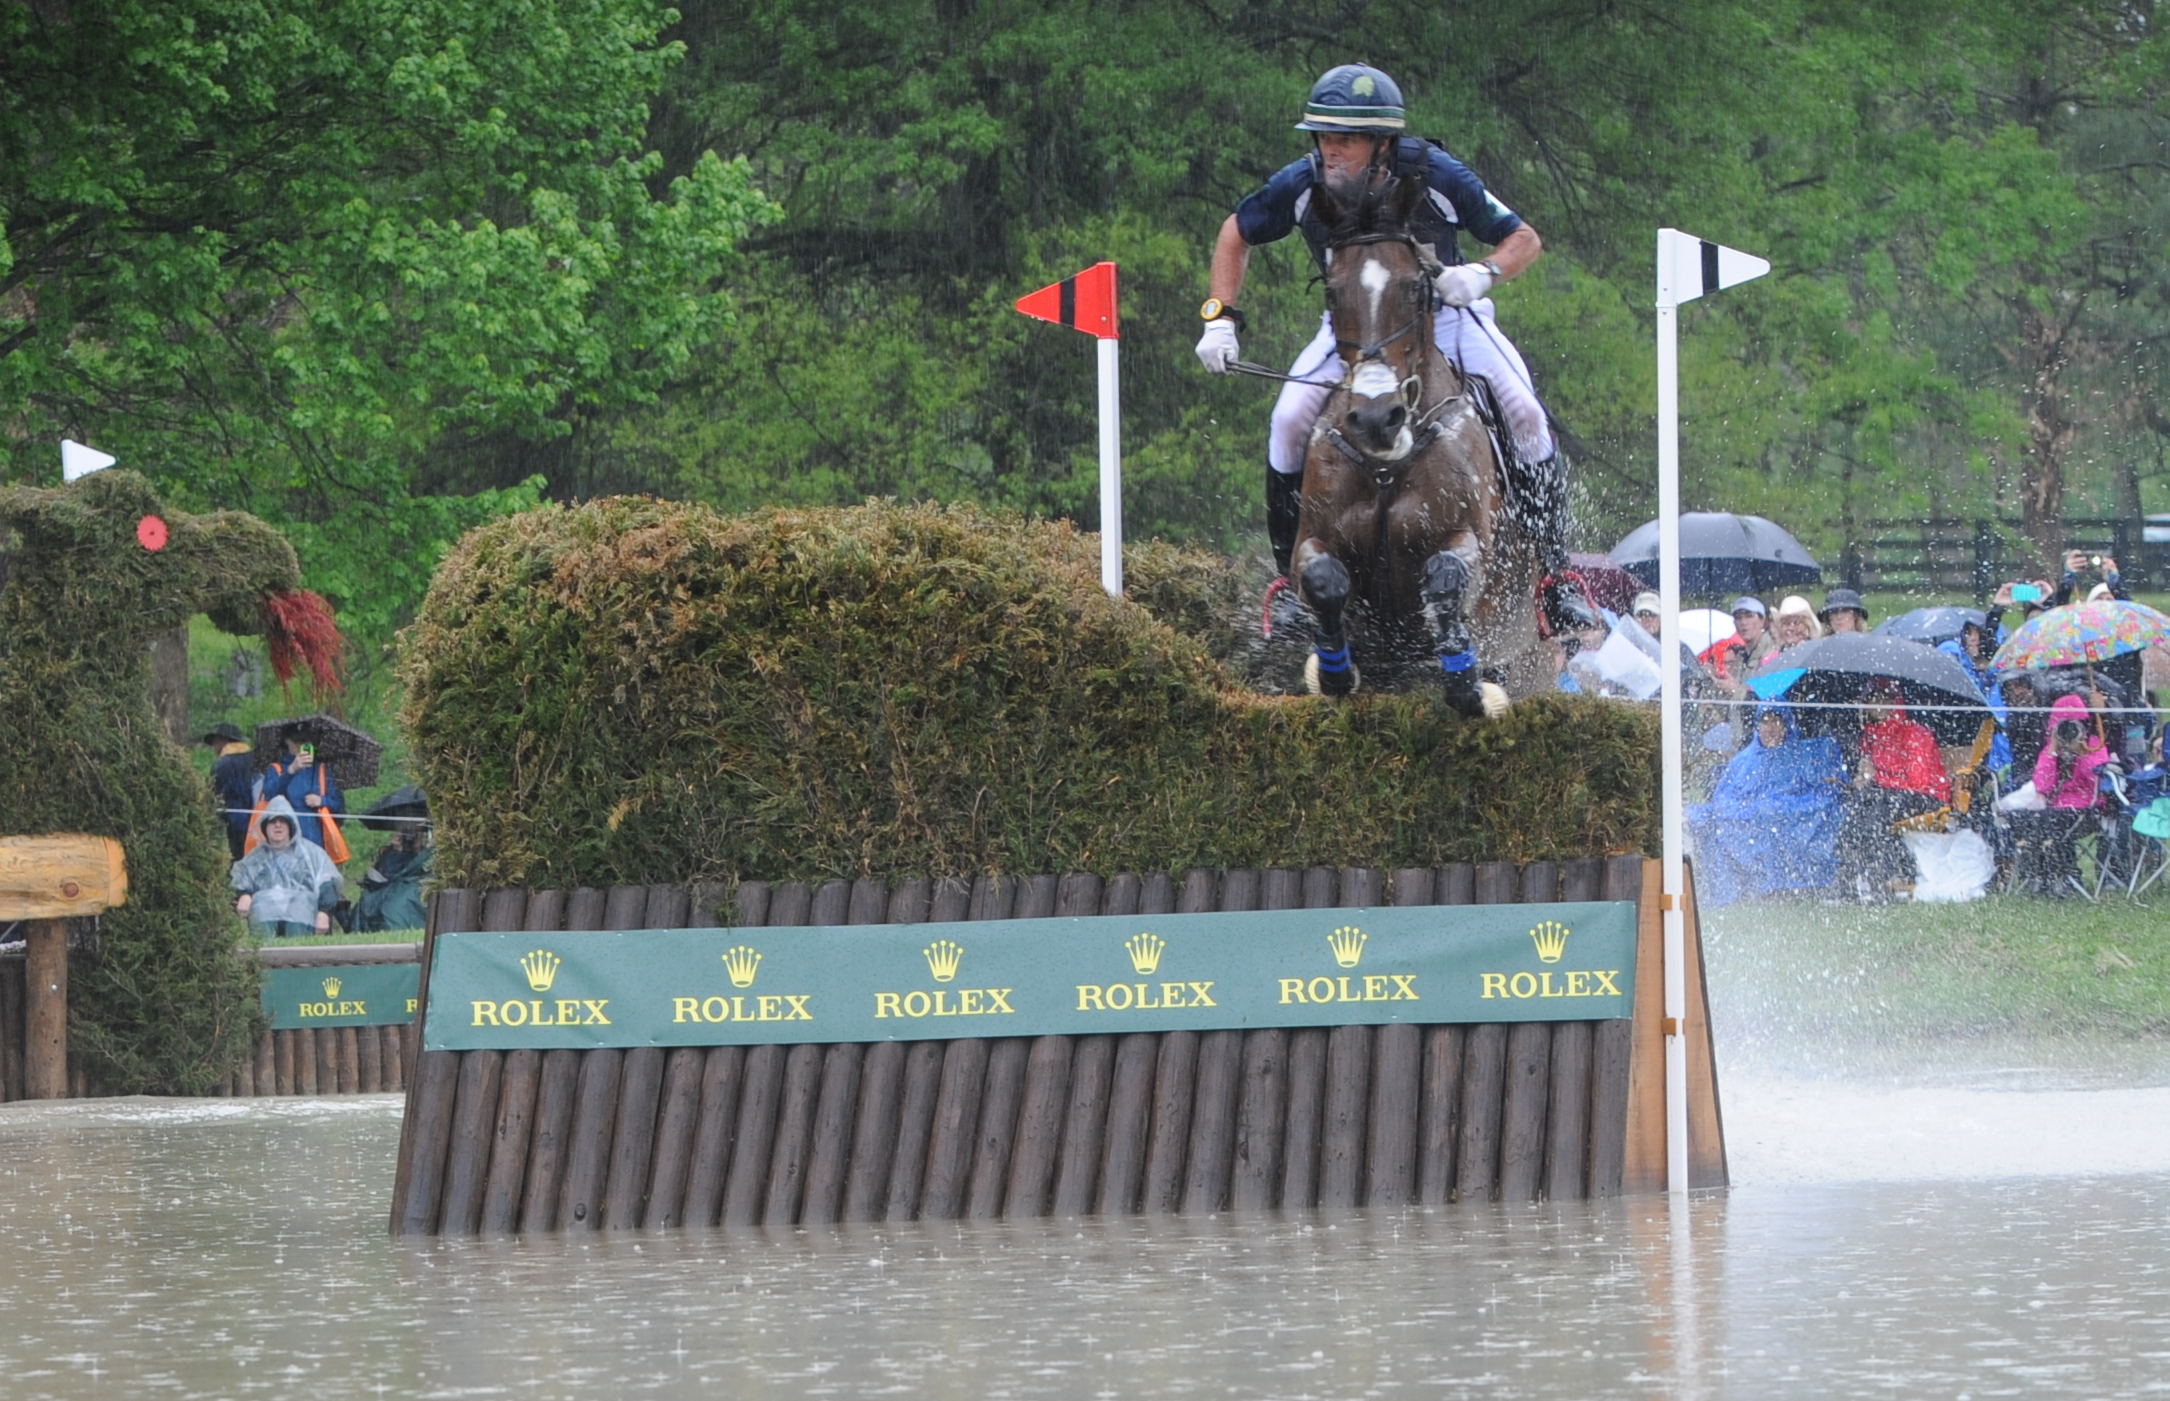 Kyle Carter and Madison Park were all clear on Saturday.